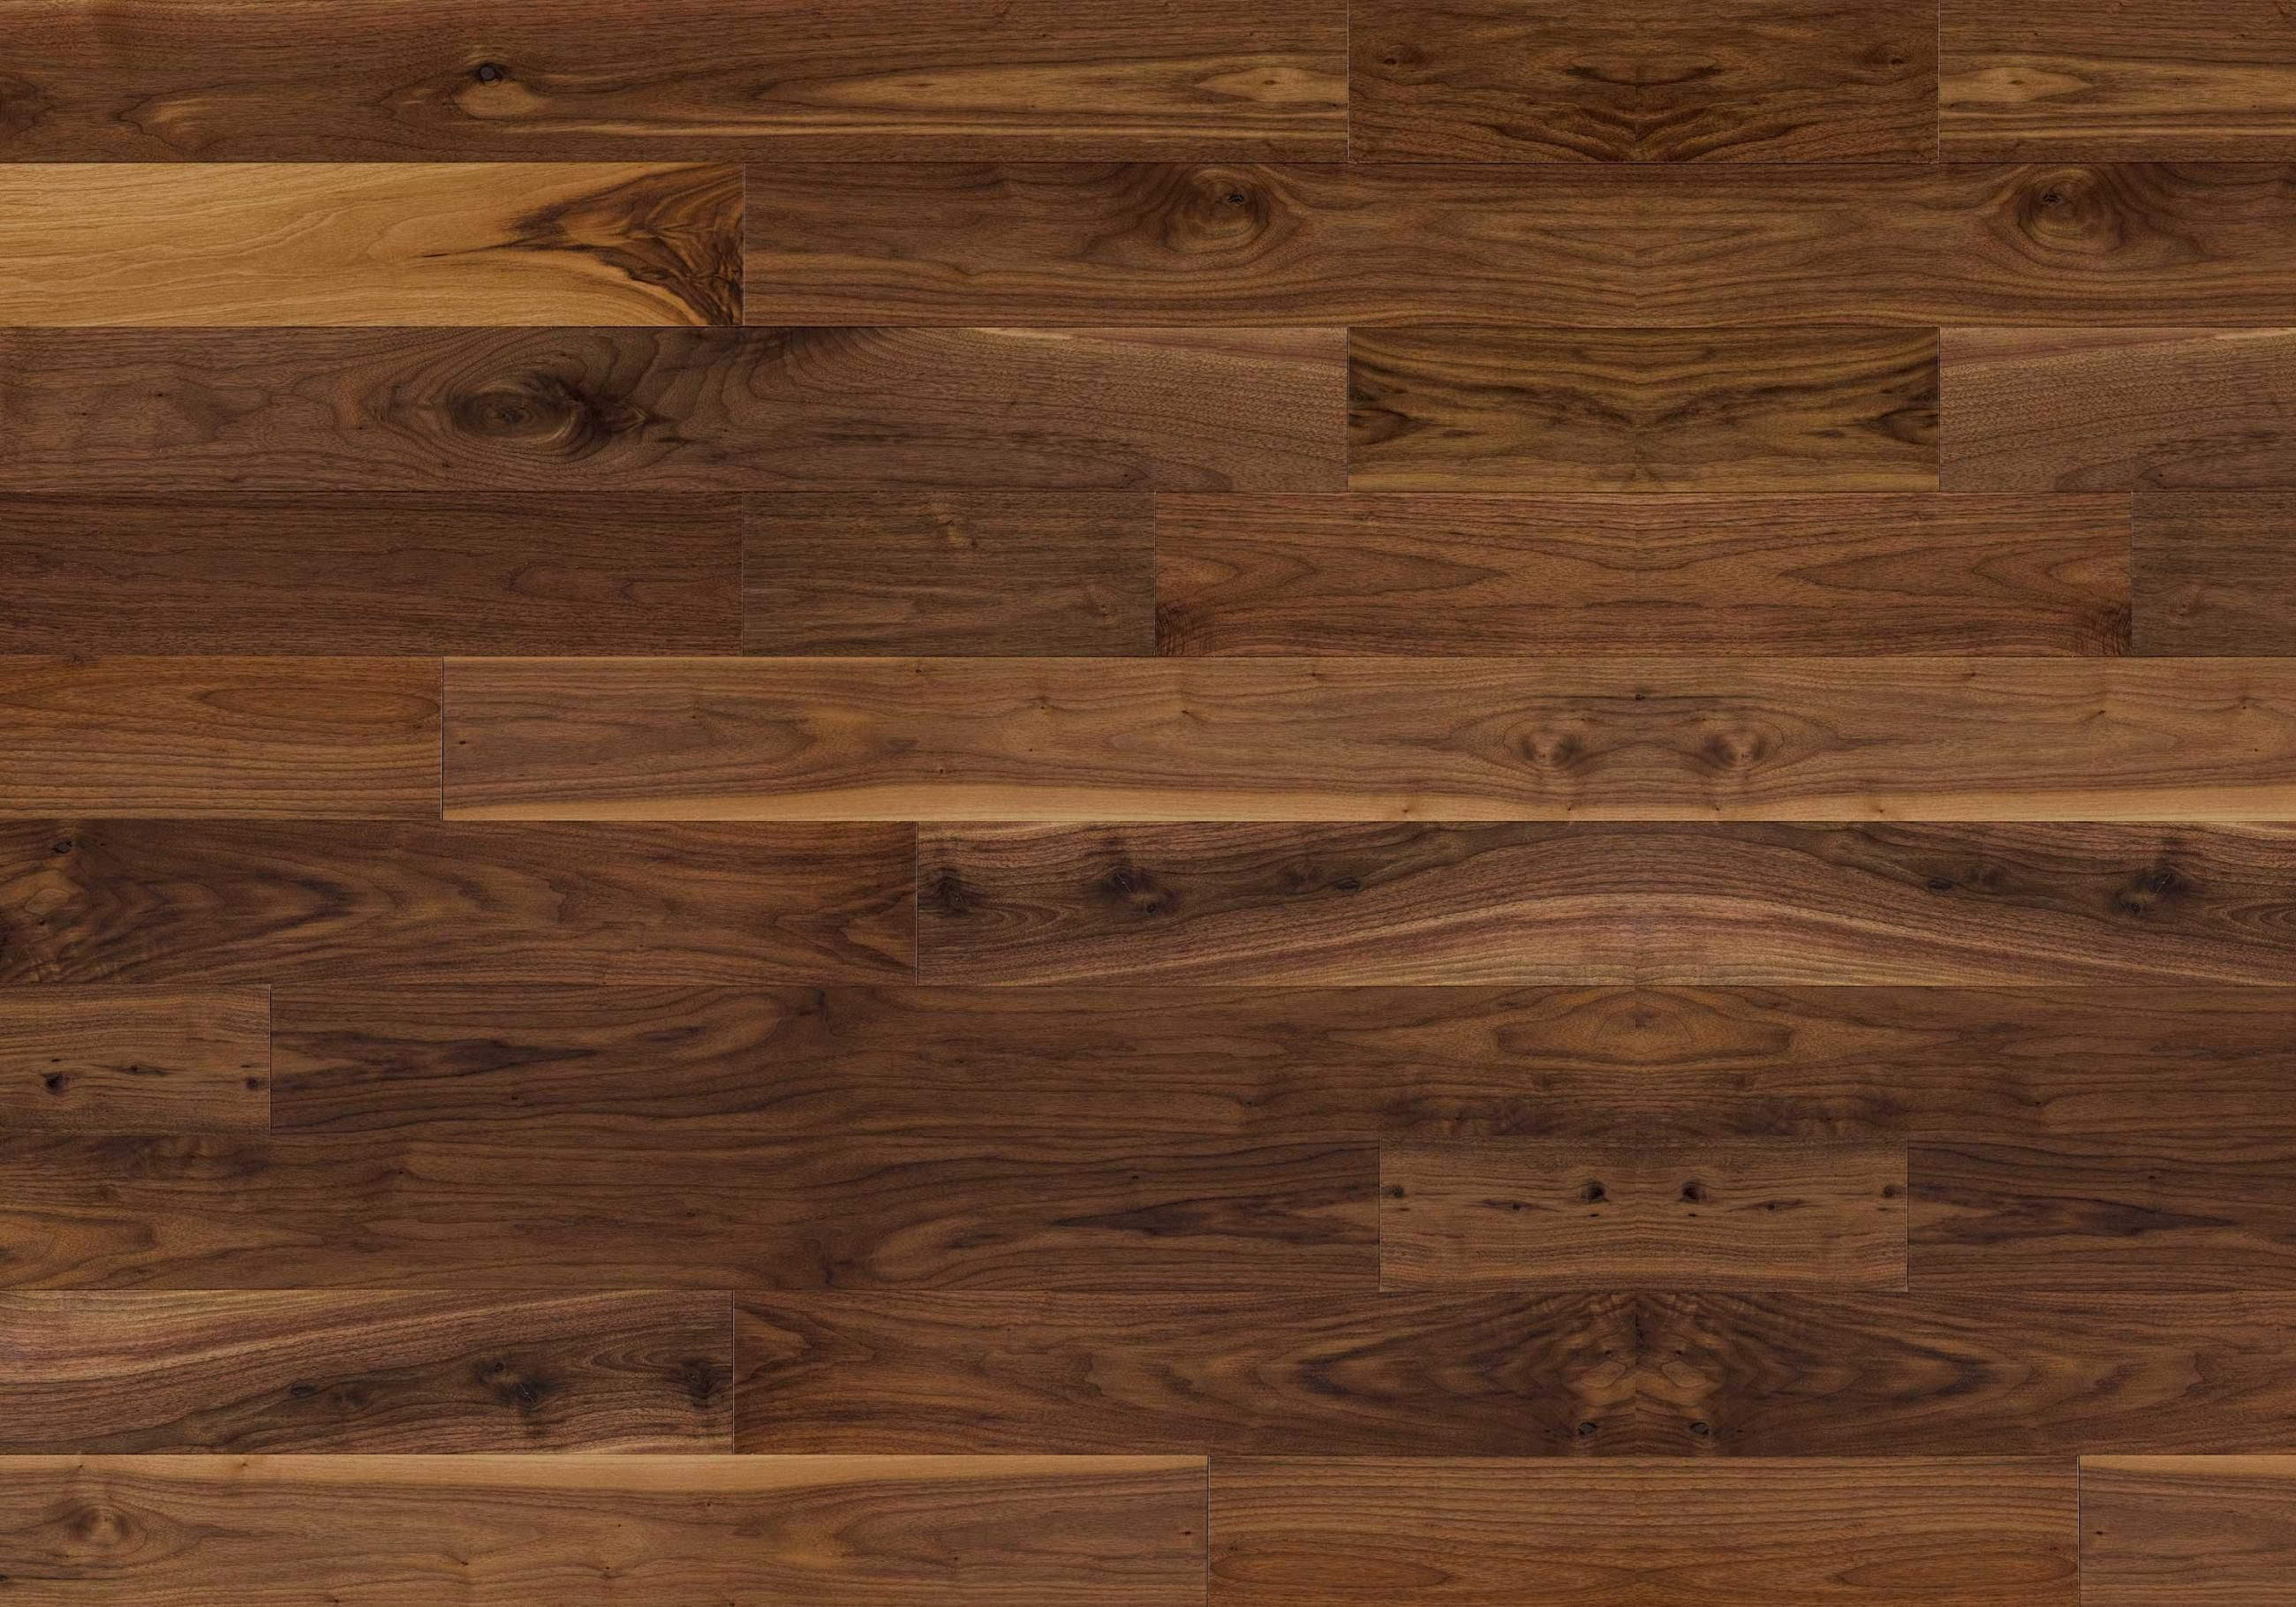 ... - Lauzon Hardwood Flooring  Walnut floors and Indoor air quality